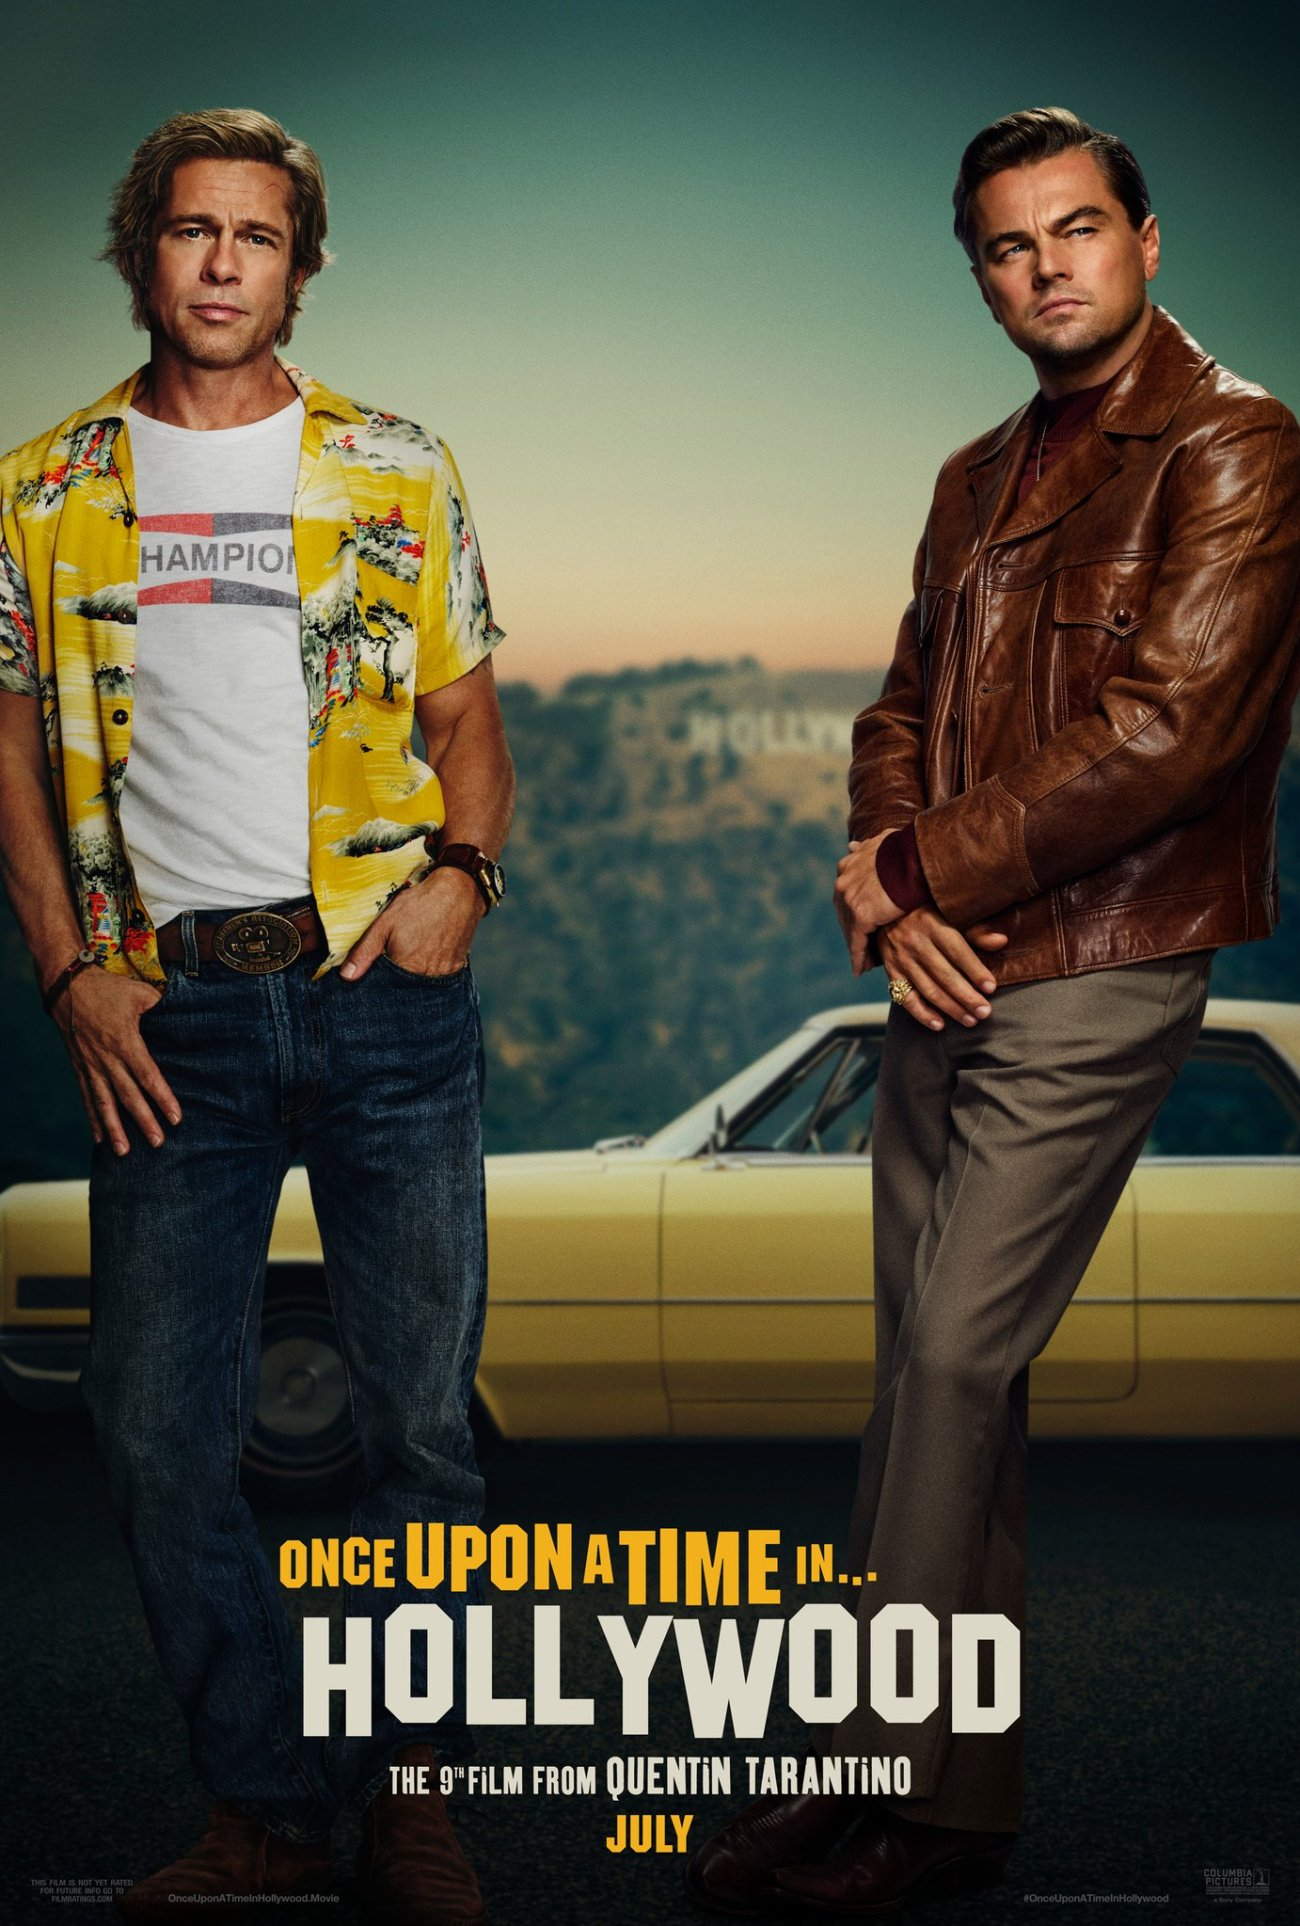 Póster de Once Upon a Time in Hollywood (2019). Imagen: Once Upon a Time in Hollywood Twitter (@OnceInHollywood).